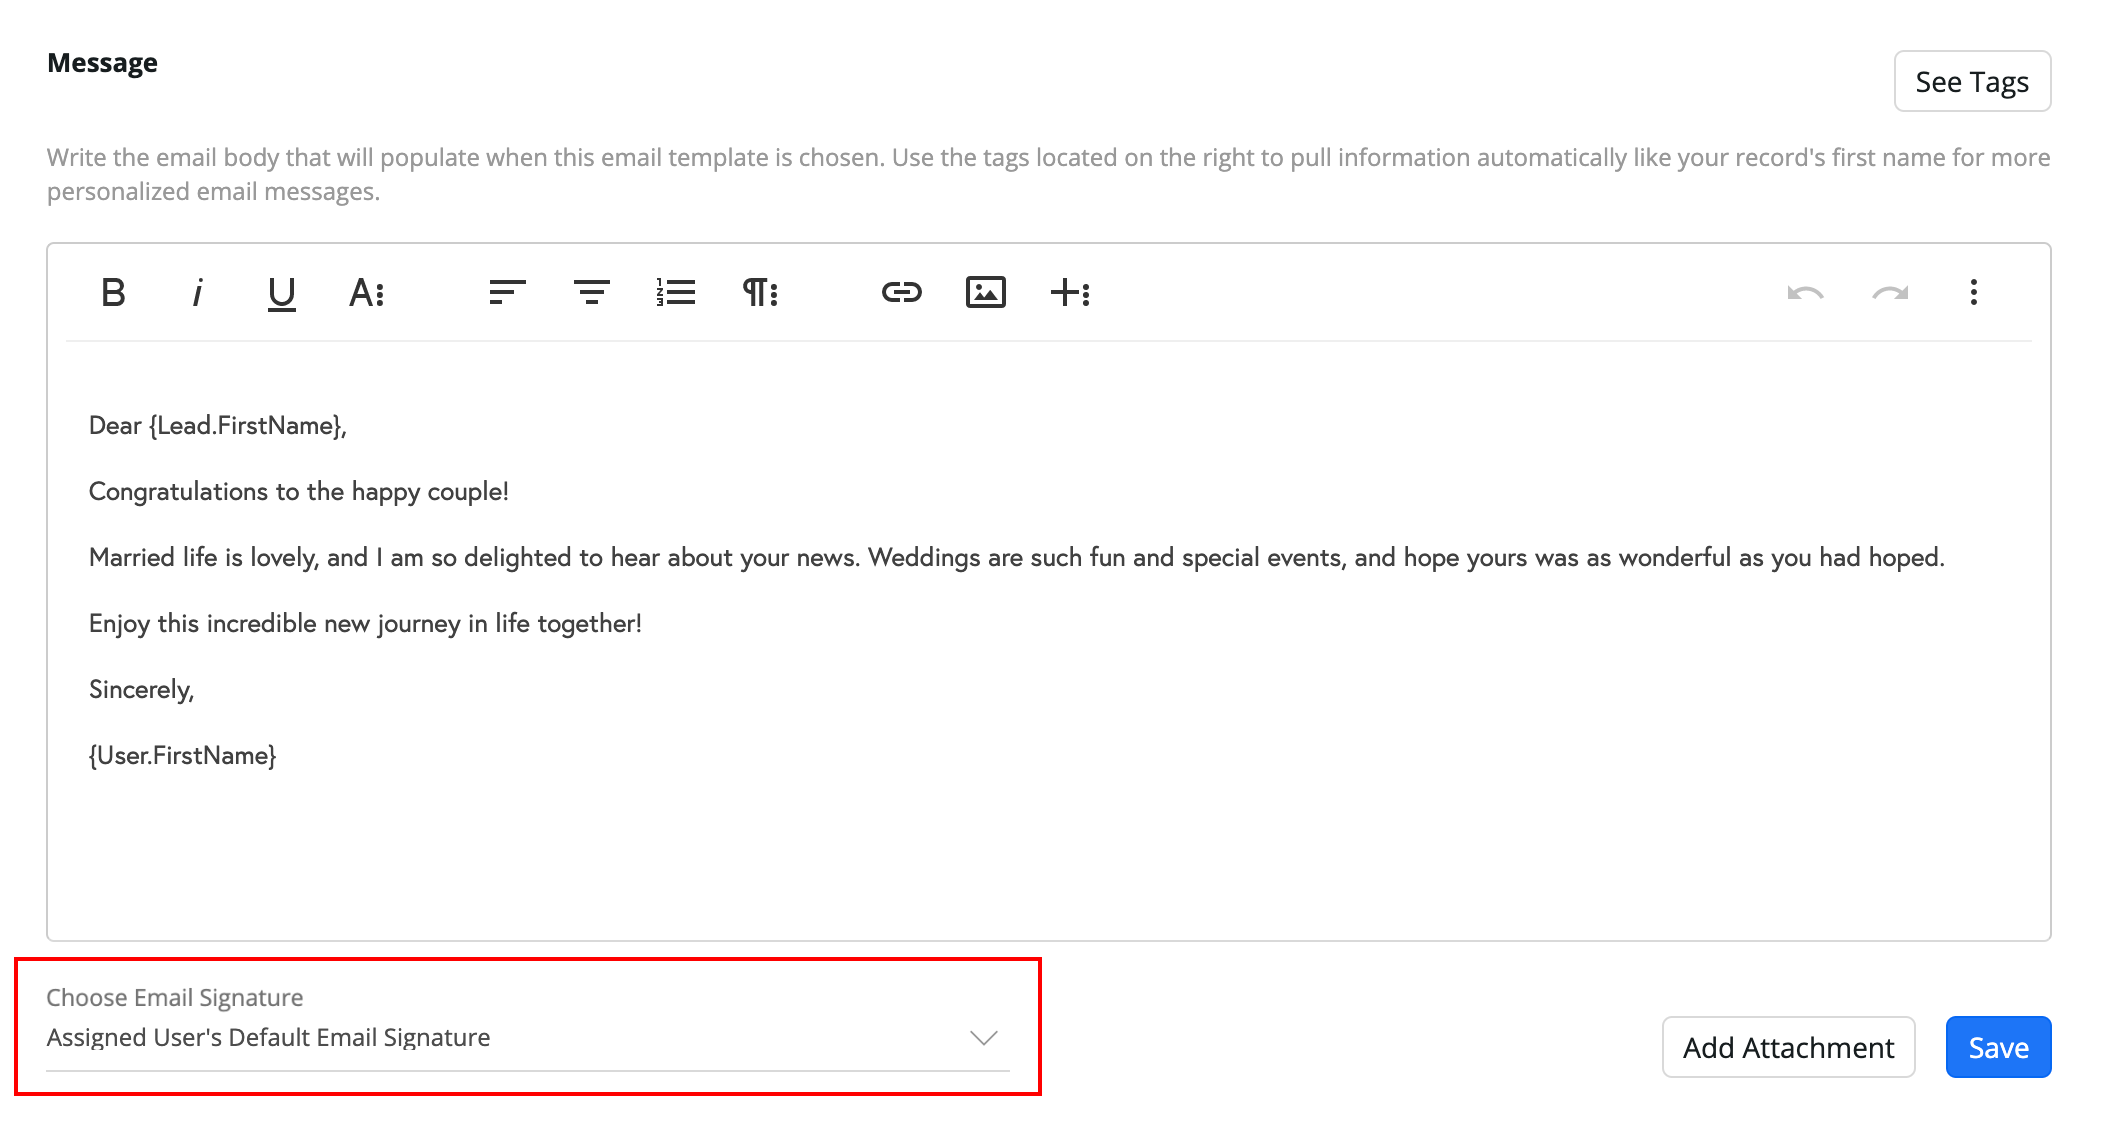 Email Signatures:  Choose the email signature option down below the message formatting area. This will auto-append the selected email signature as selected here.